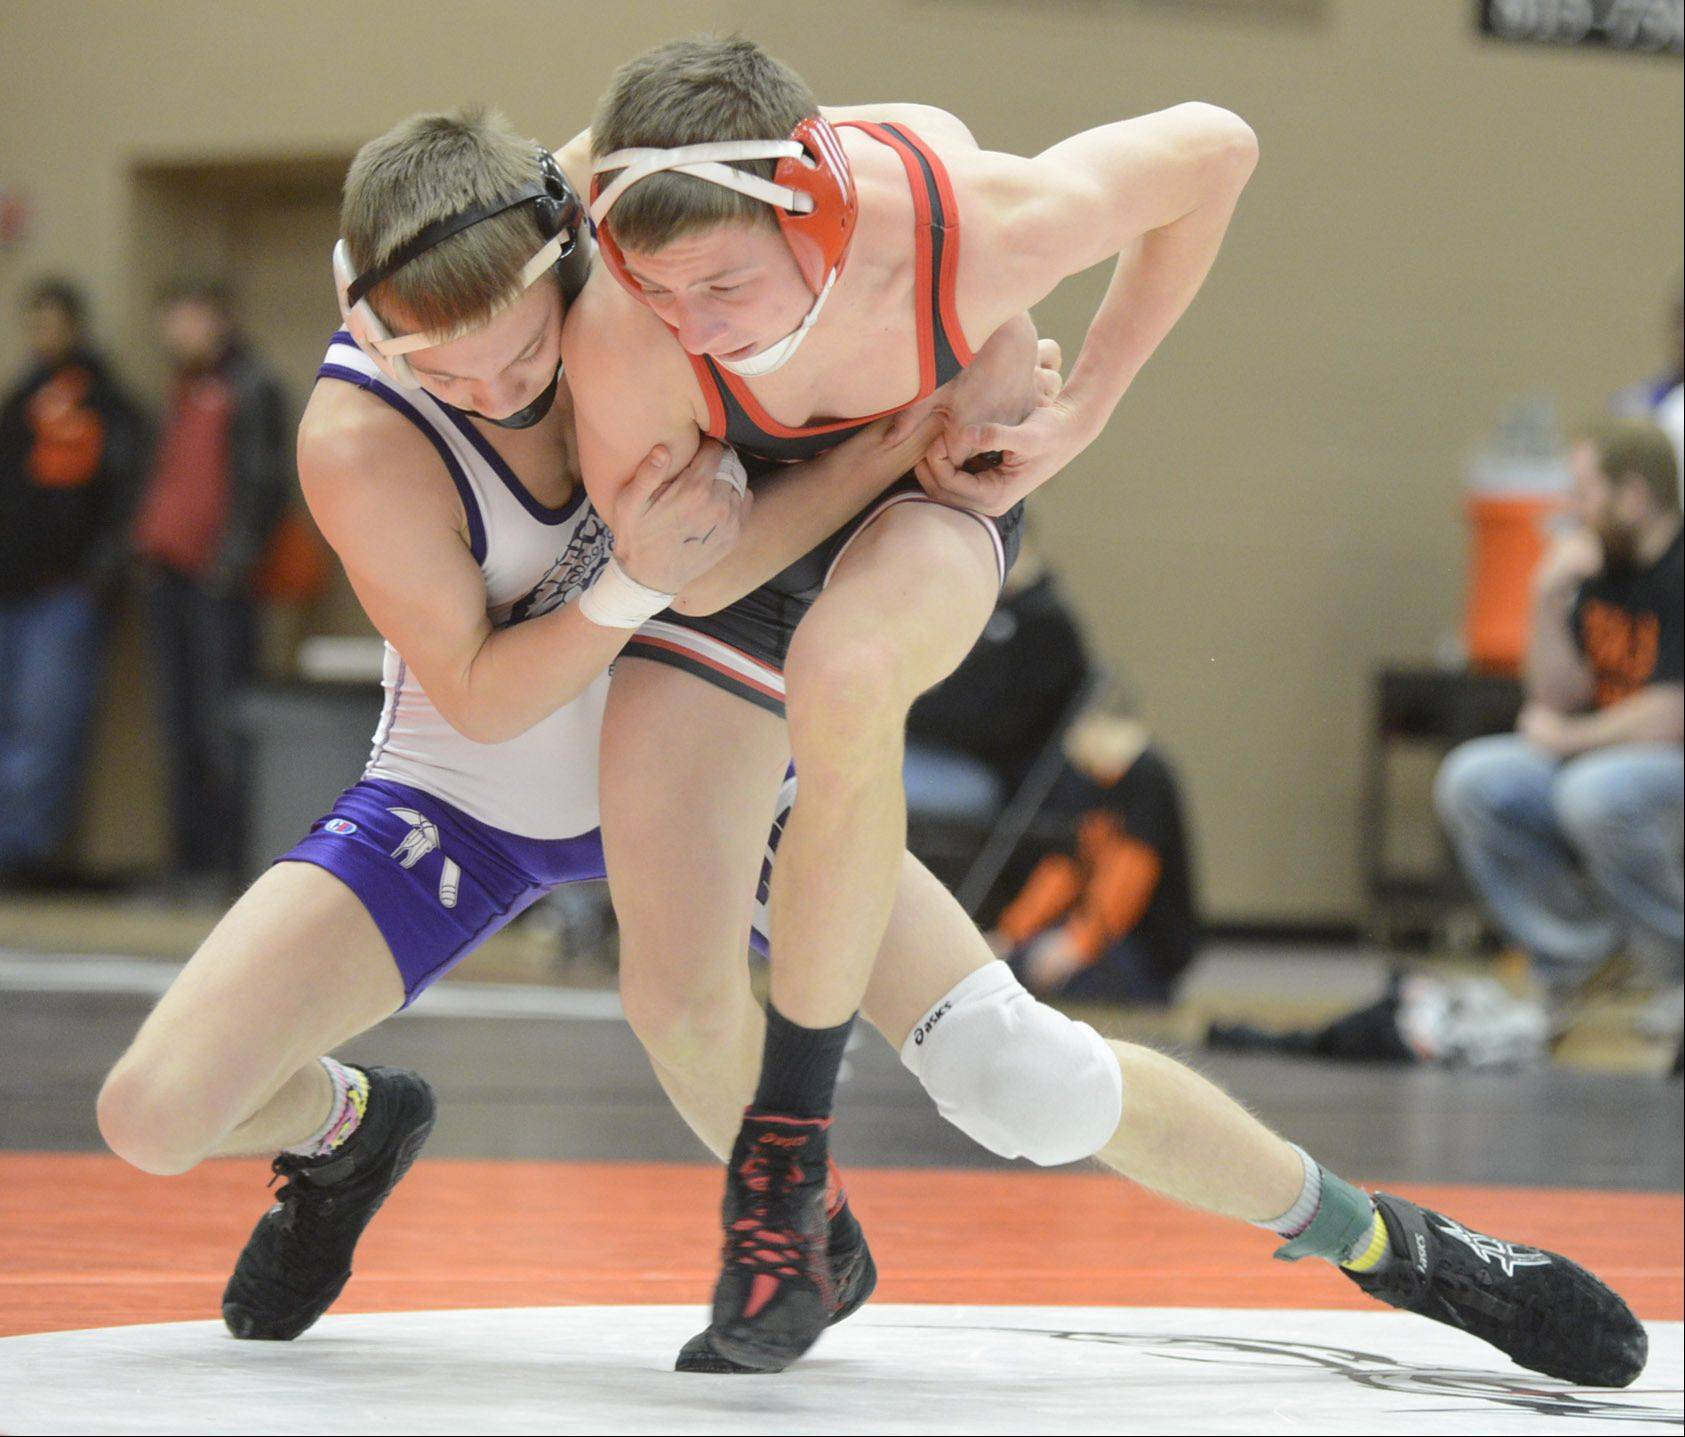 Hononegah's Brady Powers wraps up Huntley's Nick Meyer in the 113-pound match in the regional at DeKalb High School on Saturday.